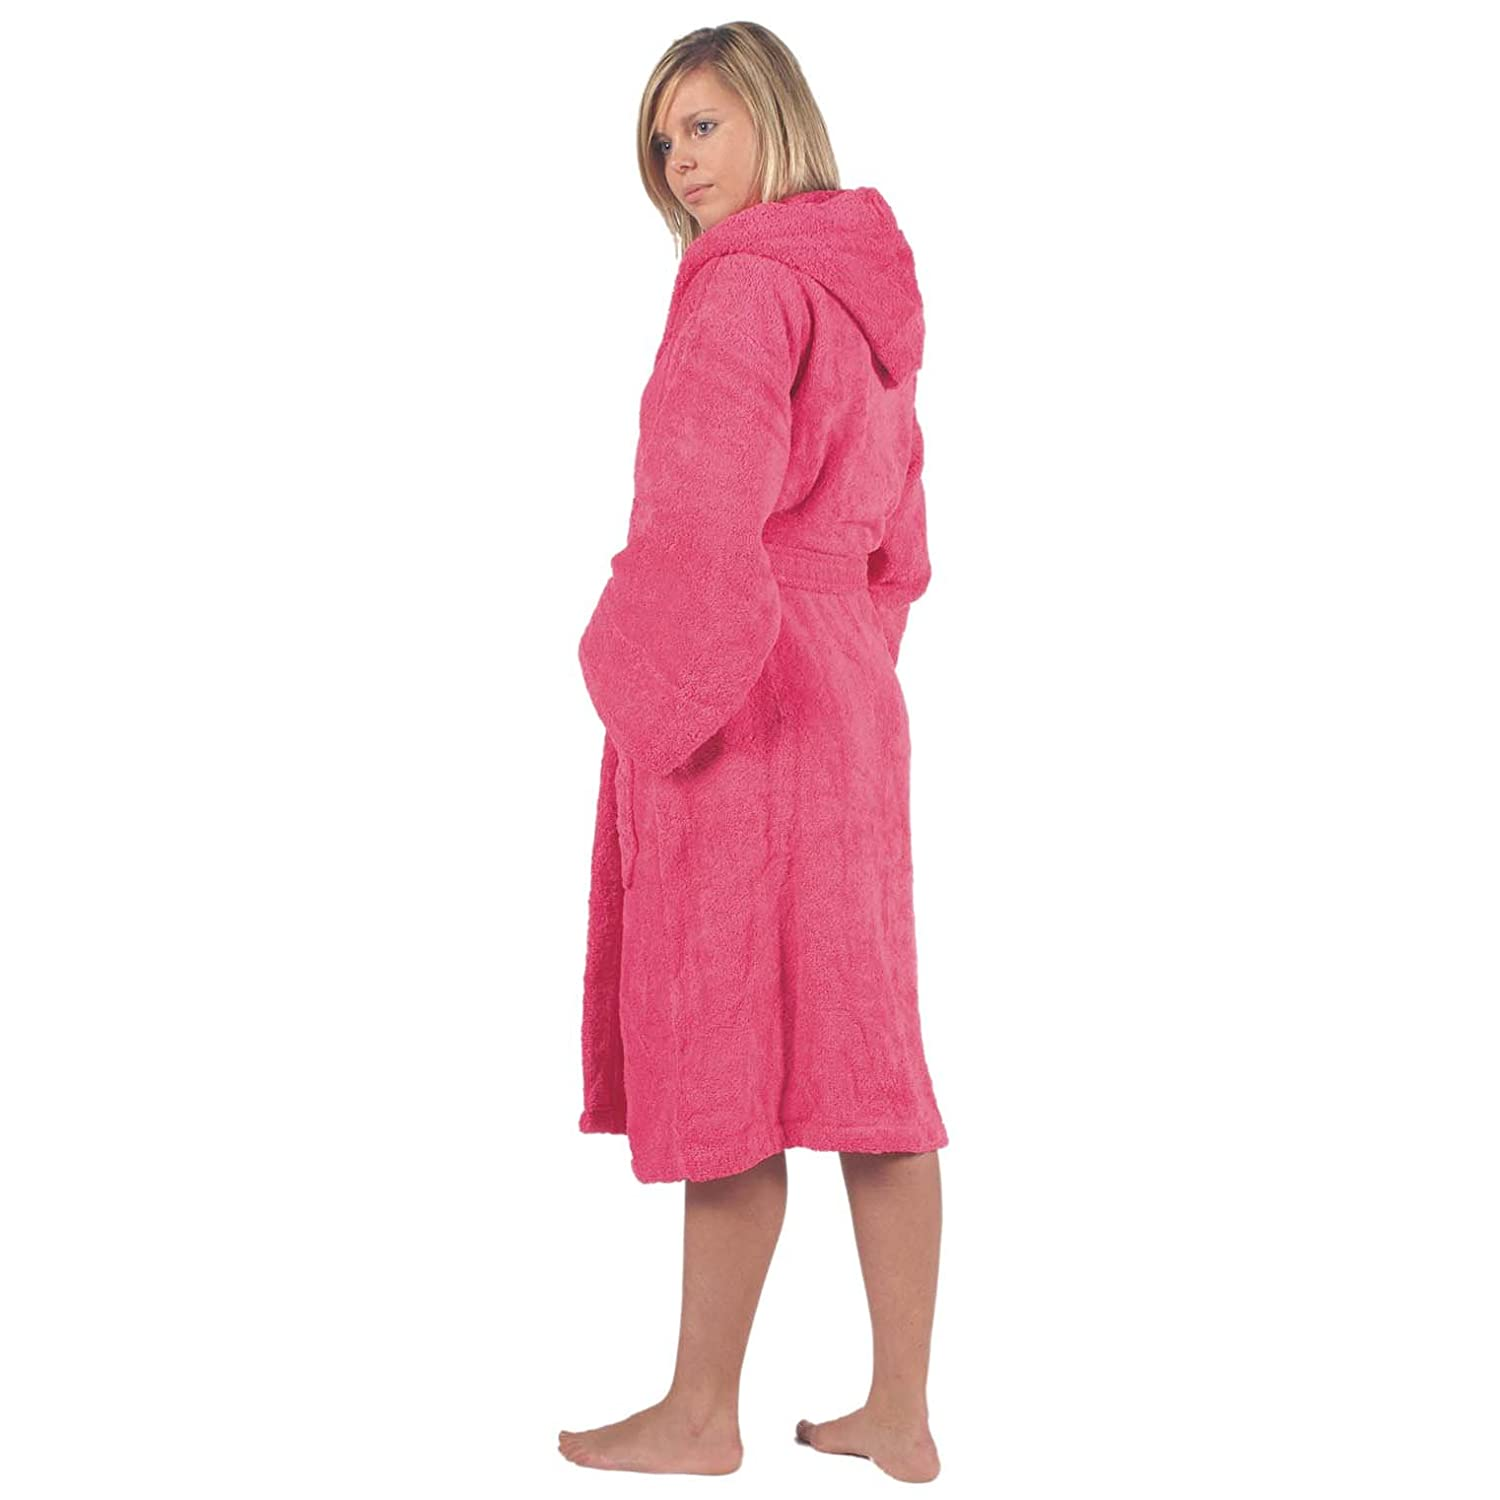 c919f55f46 TowelsRus 100 % Egyptian Cotton Hooded Unisex Dressing Gown Thick  Towelling